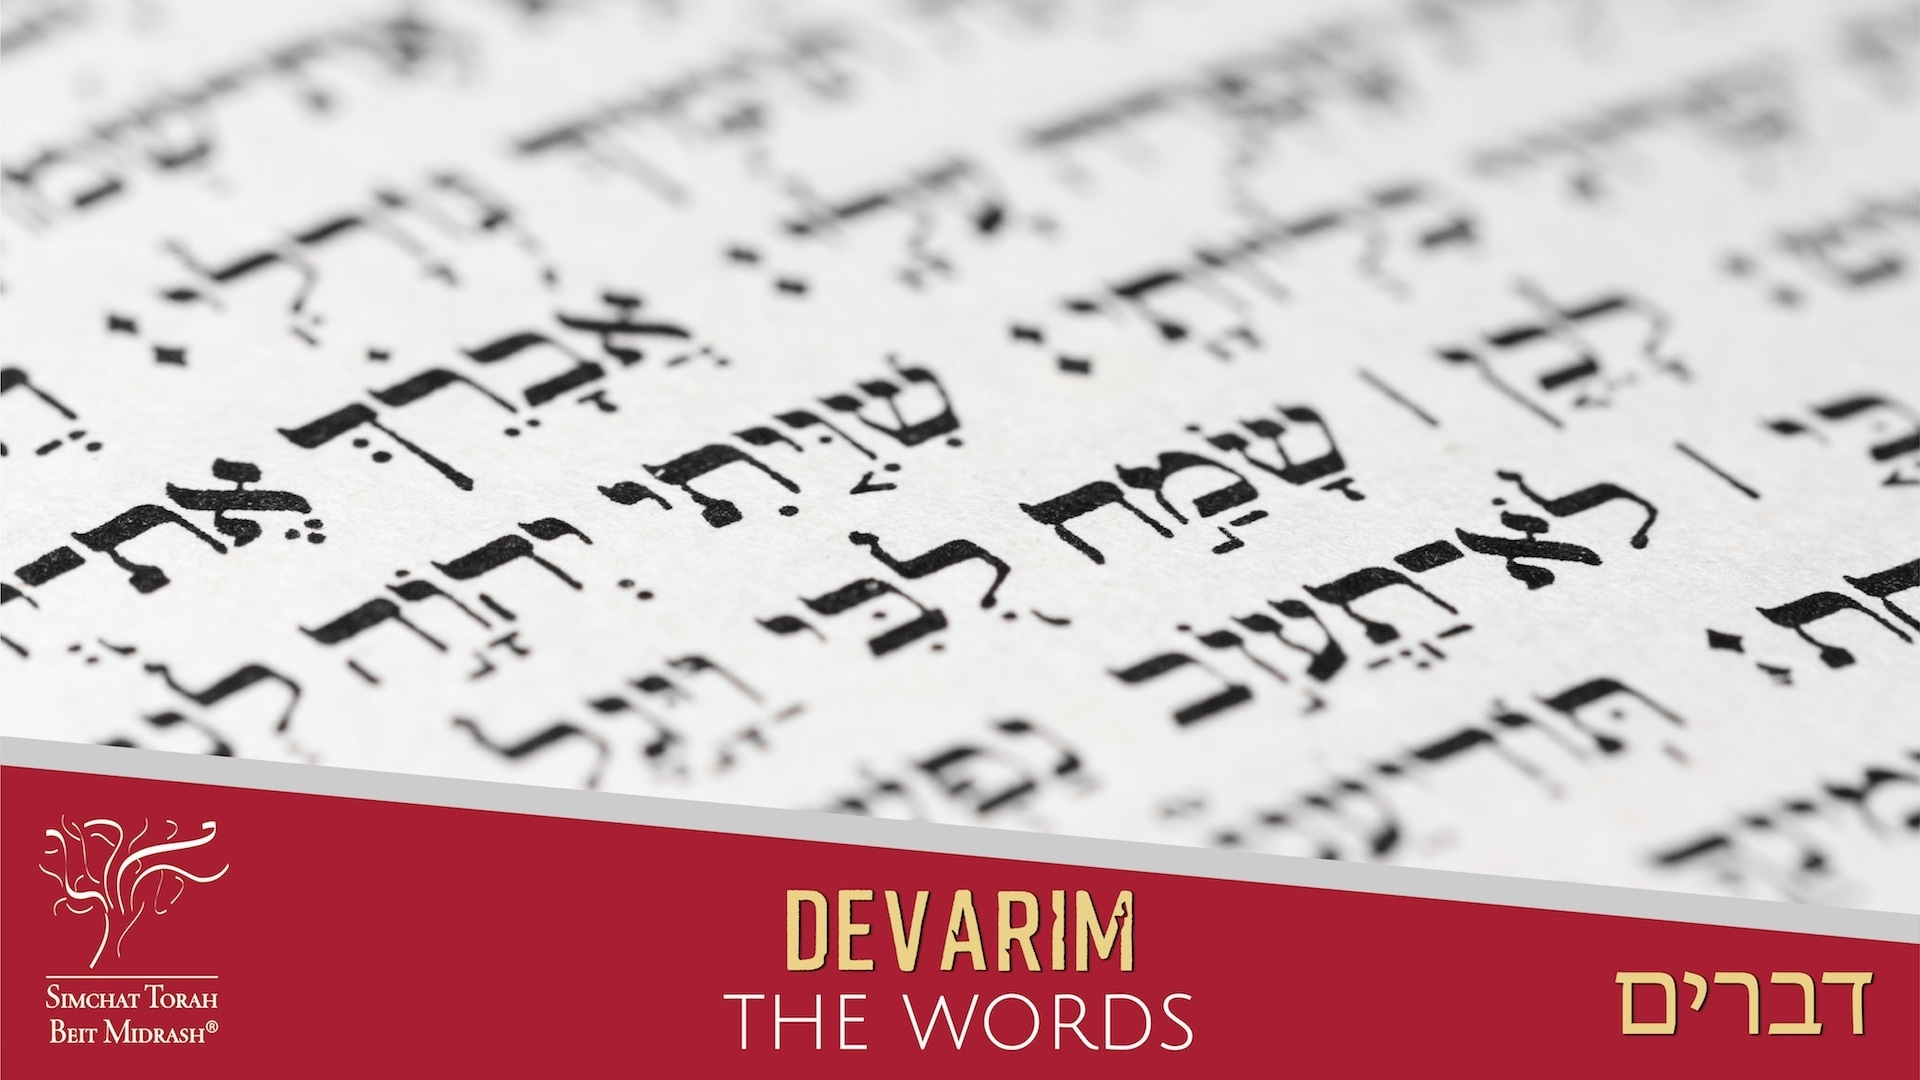 Devarim - Simchat Torah Beit Midrash regarding Torah Portions For 2019 And 2020